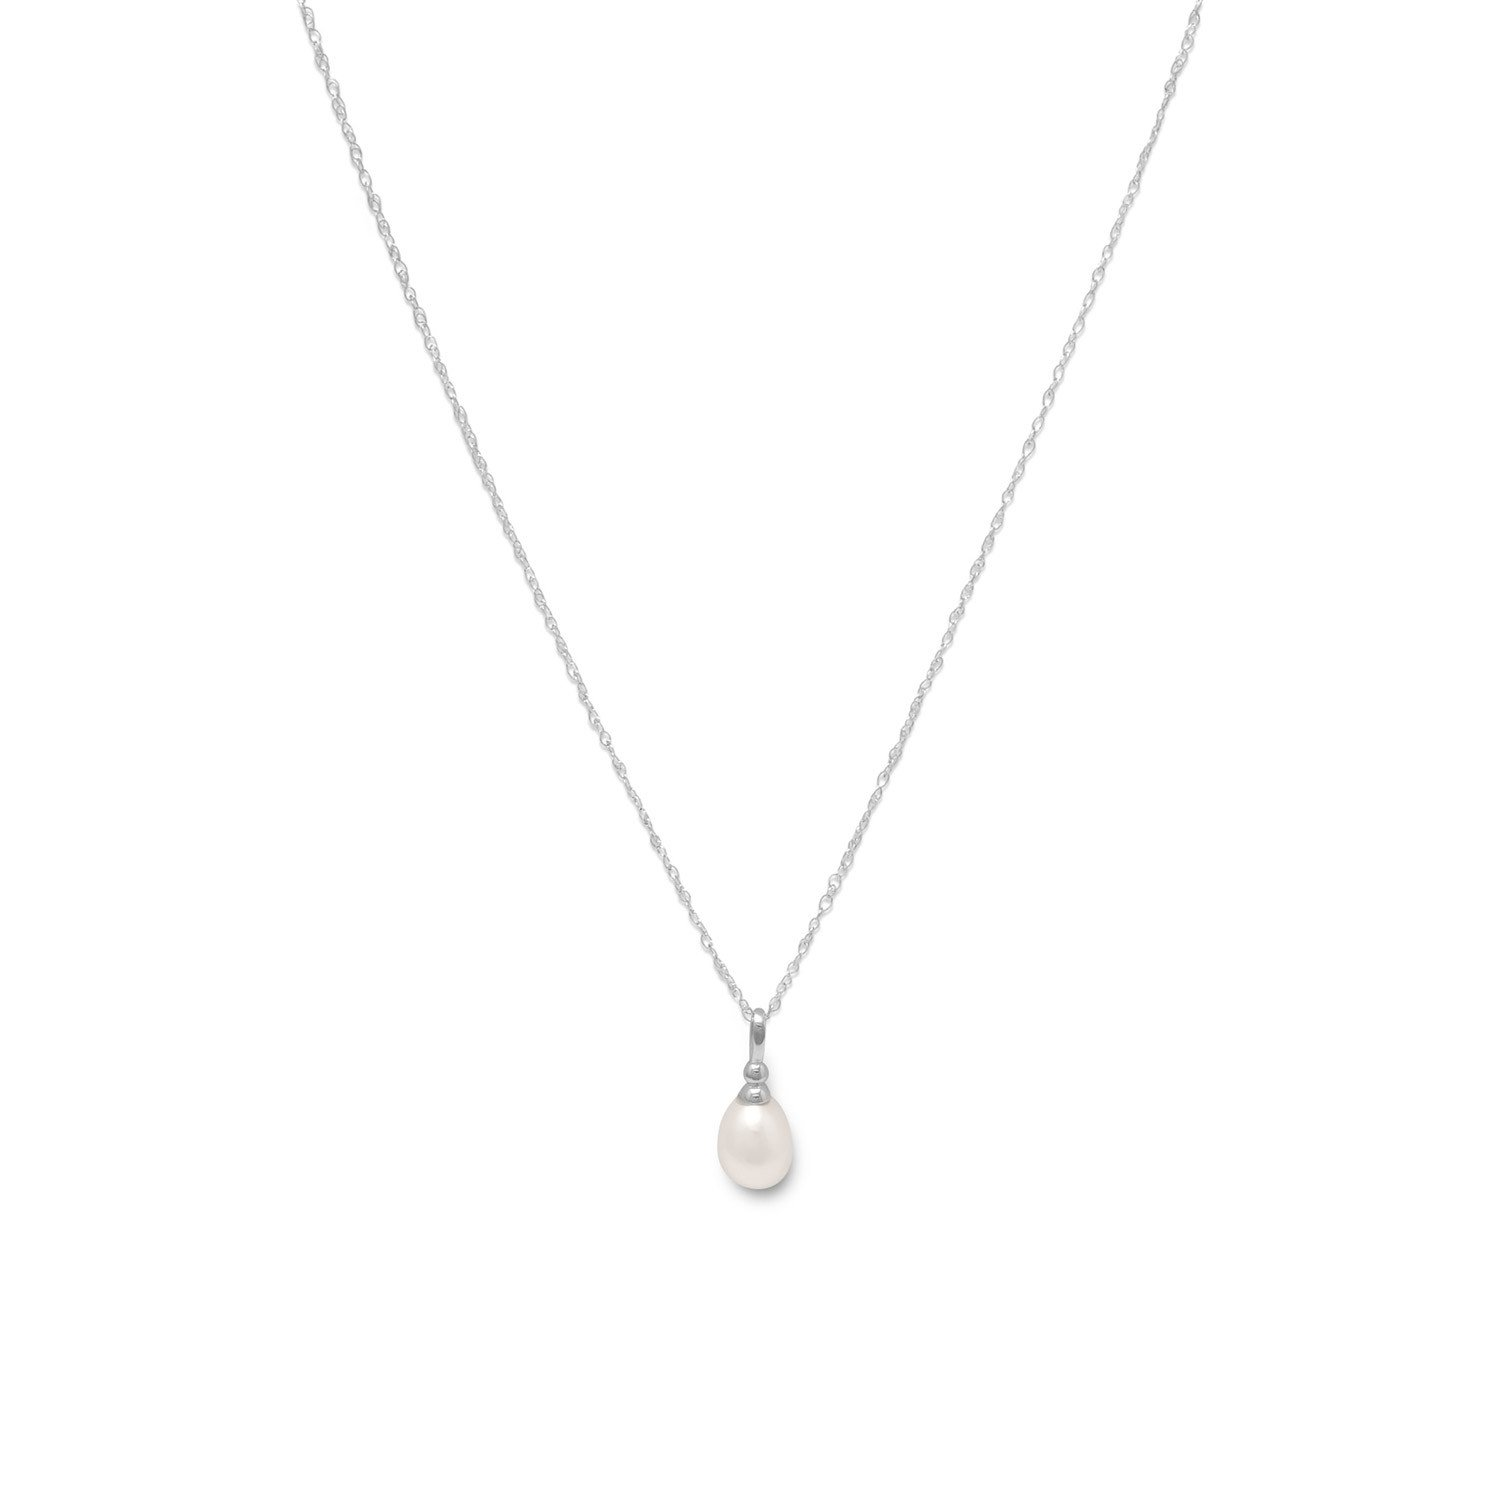 18″ Rhodium Plated Cultured Freshwater Pearl Drop Necklace